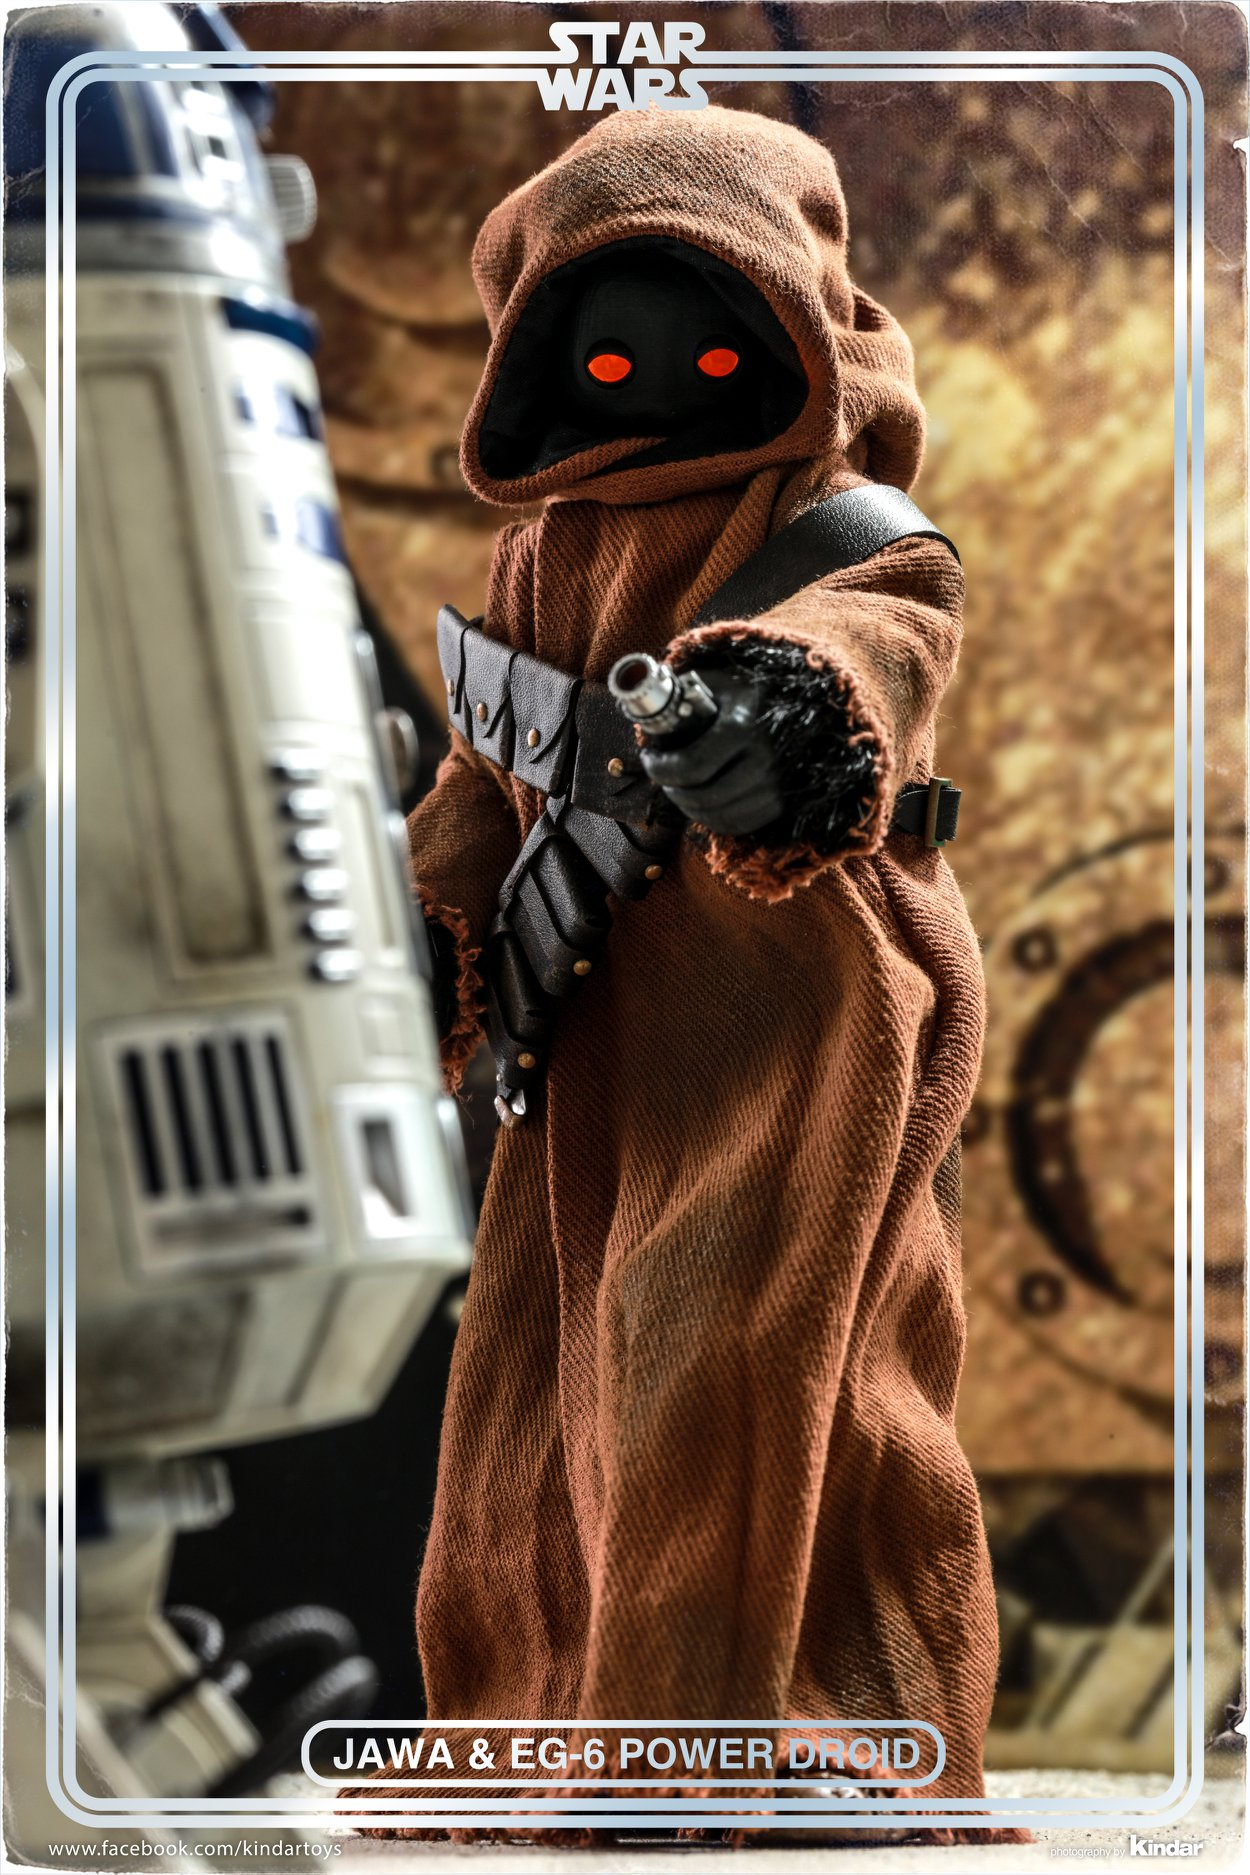 Hot Toys <a href='/espece-69-jawa.html' class='qtip_motcle' tt_type='espece' tt_id=69>Jawa</a> & EG-6 Power Droid